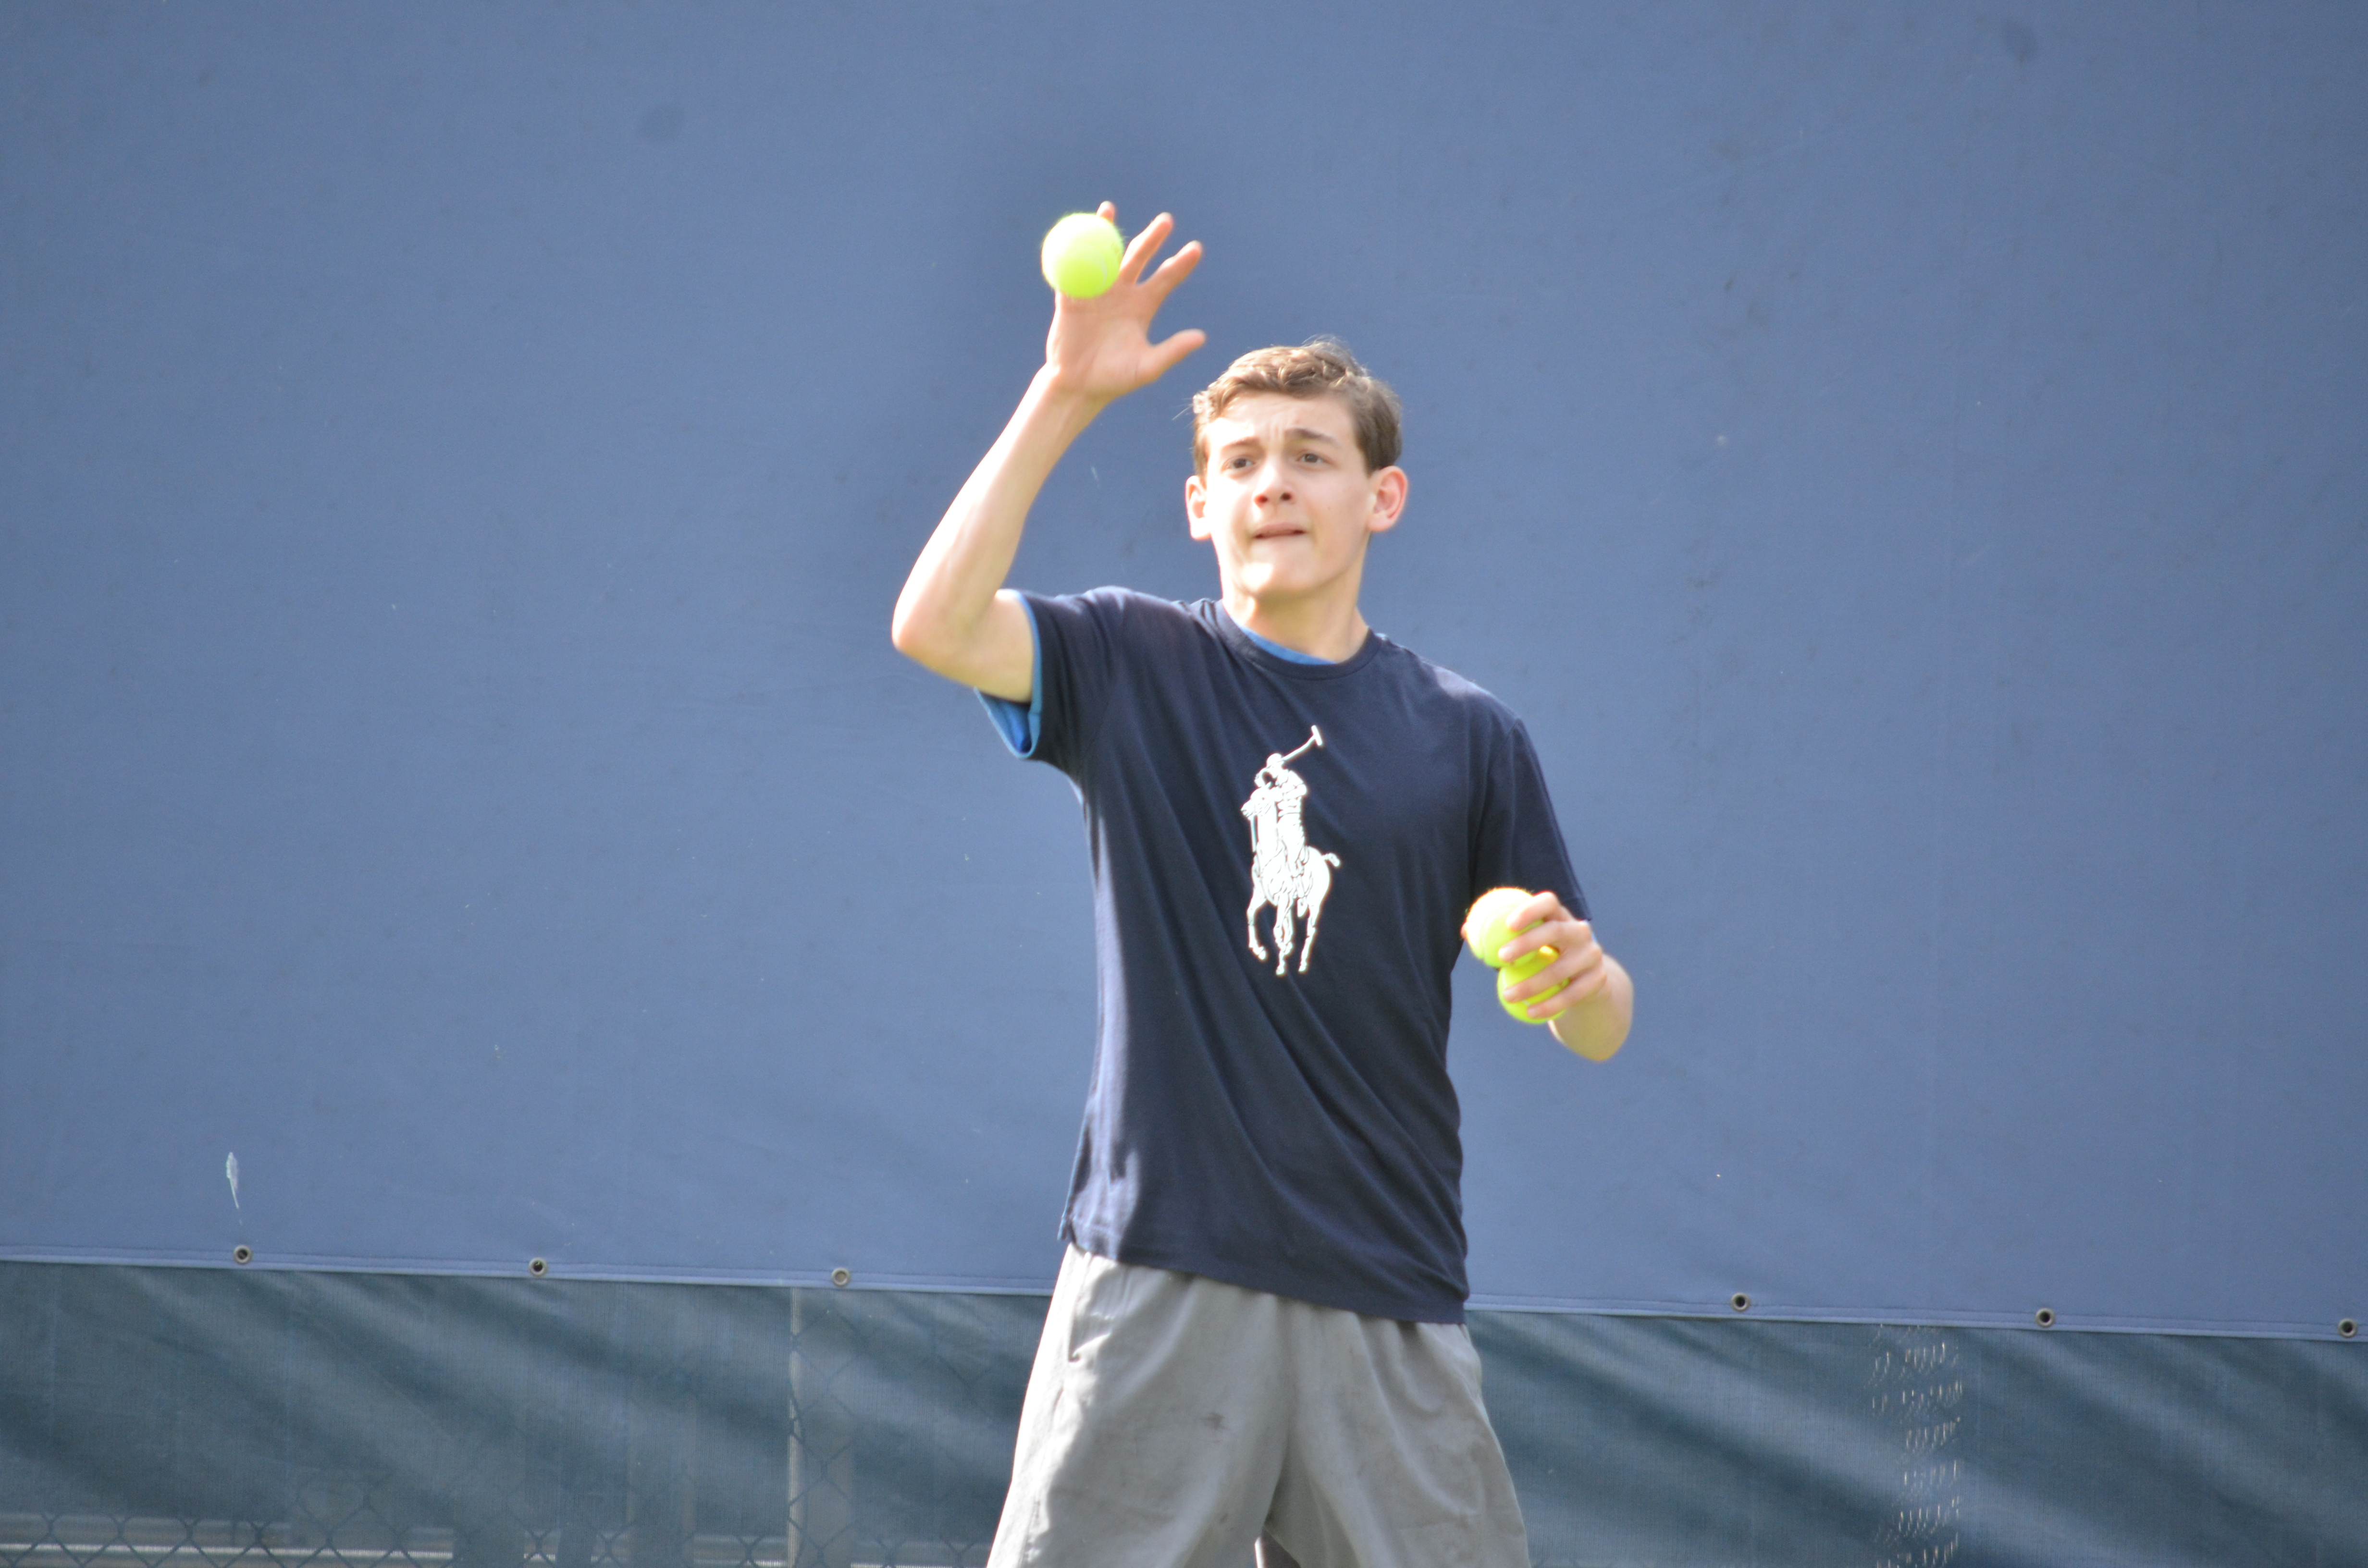 e77682804 Locals Try to Make the Cut at U.S. Open Ballperson Tryouts